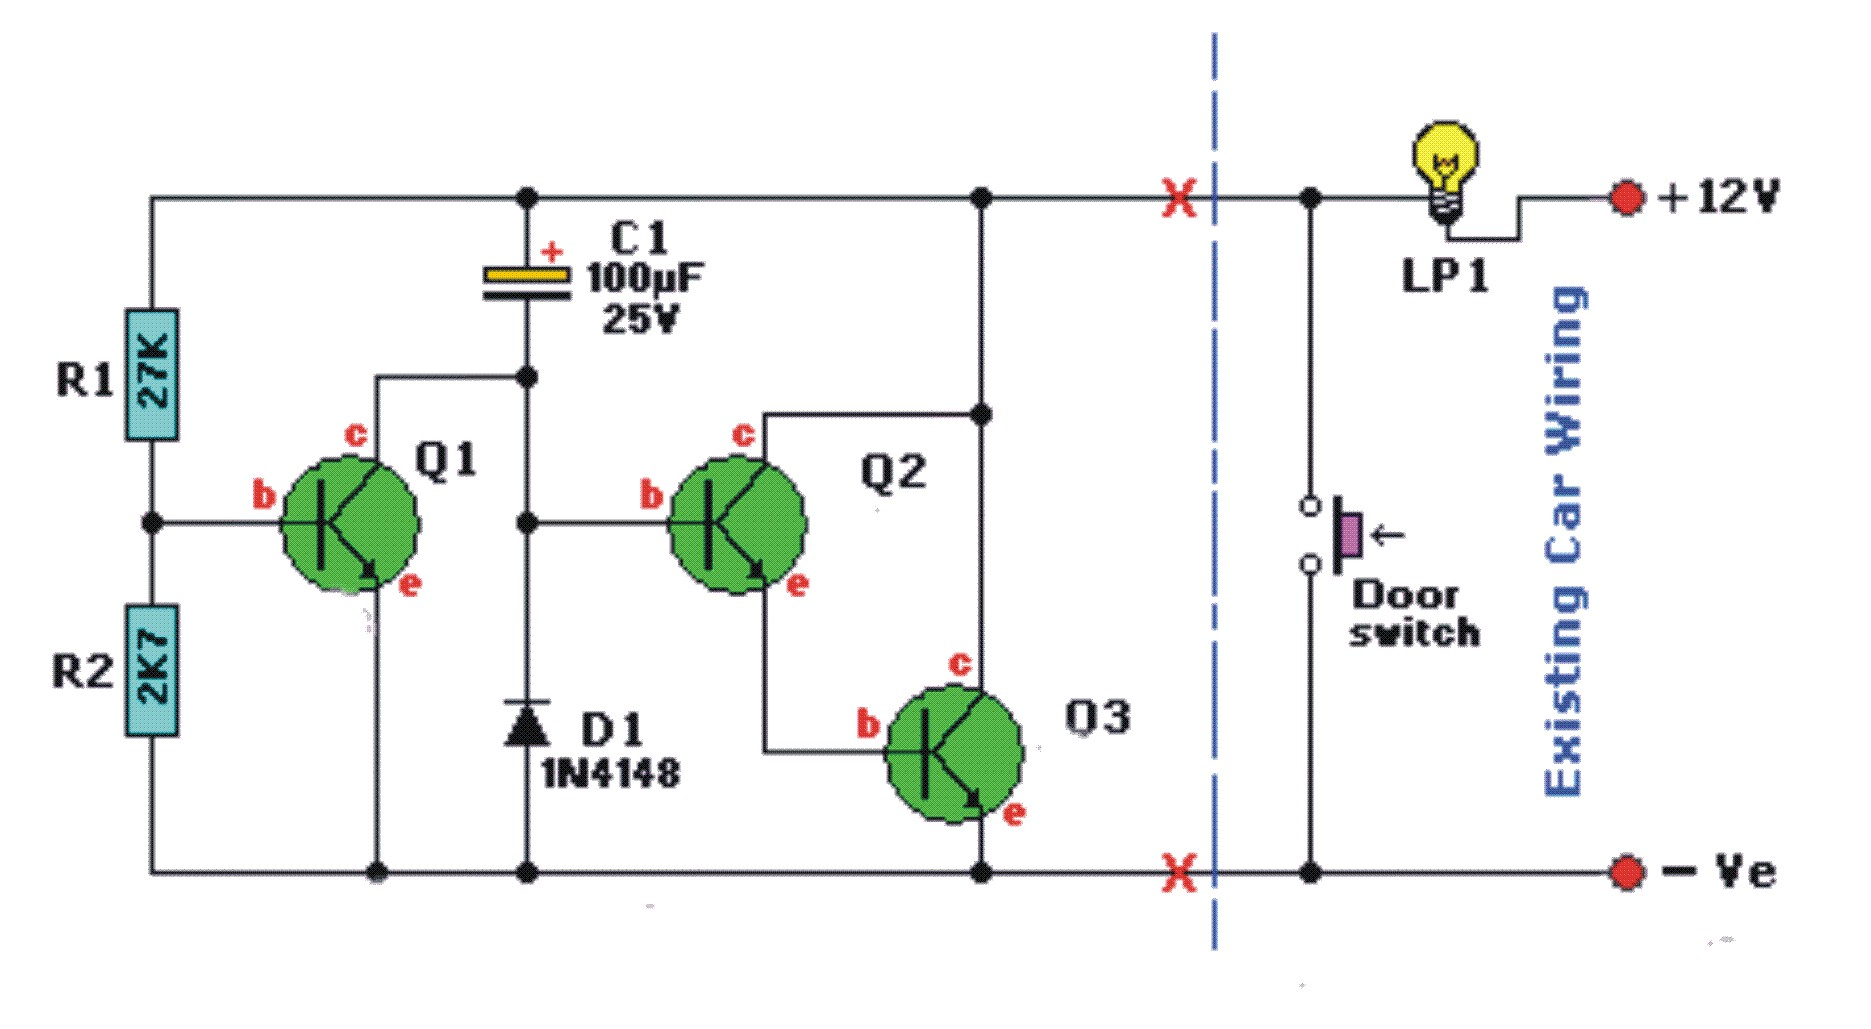 hight resolution of dome light schematic volvo opinions about wiring diagram u2022 usb switch schematic dome light schematic